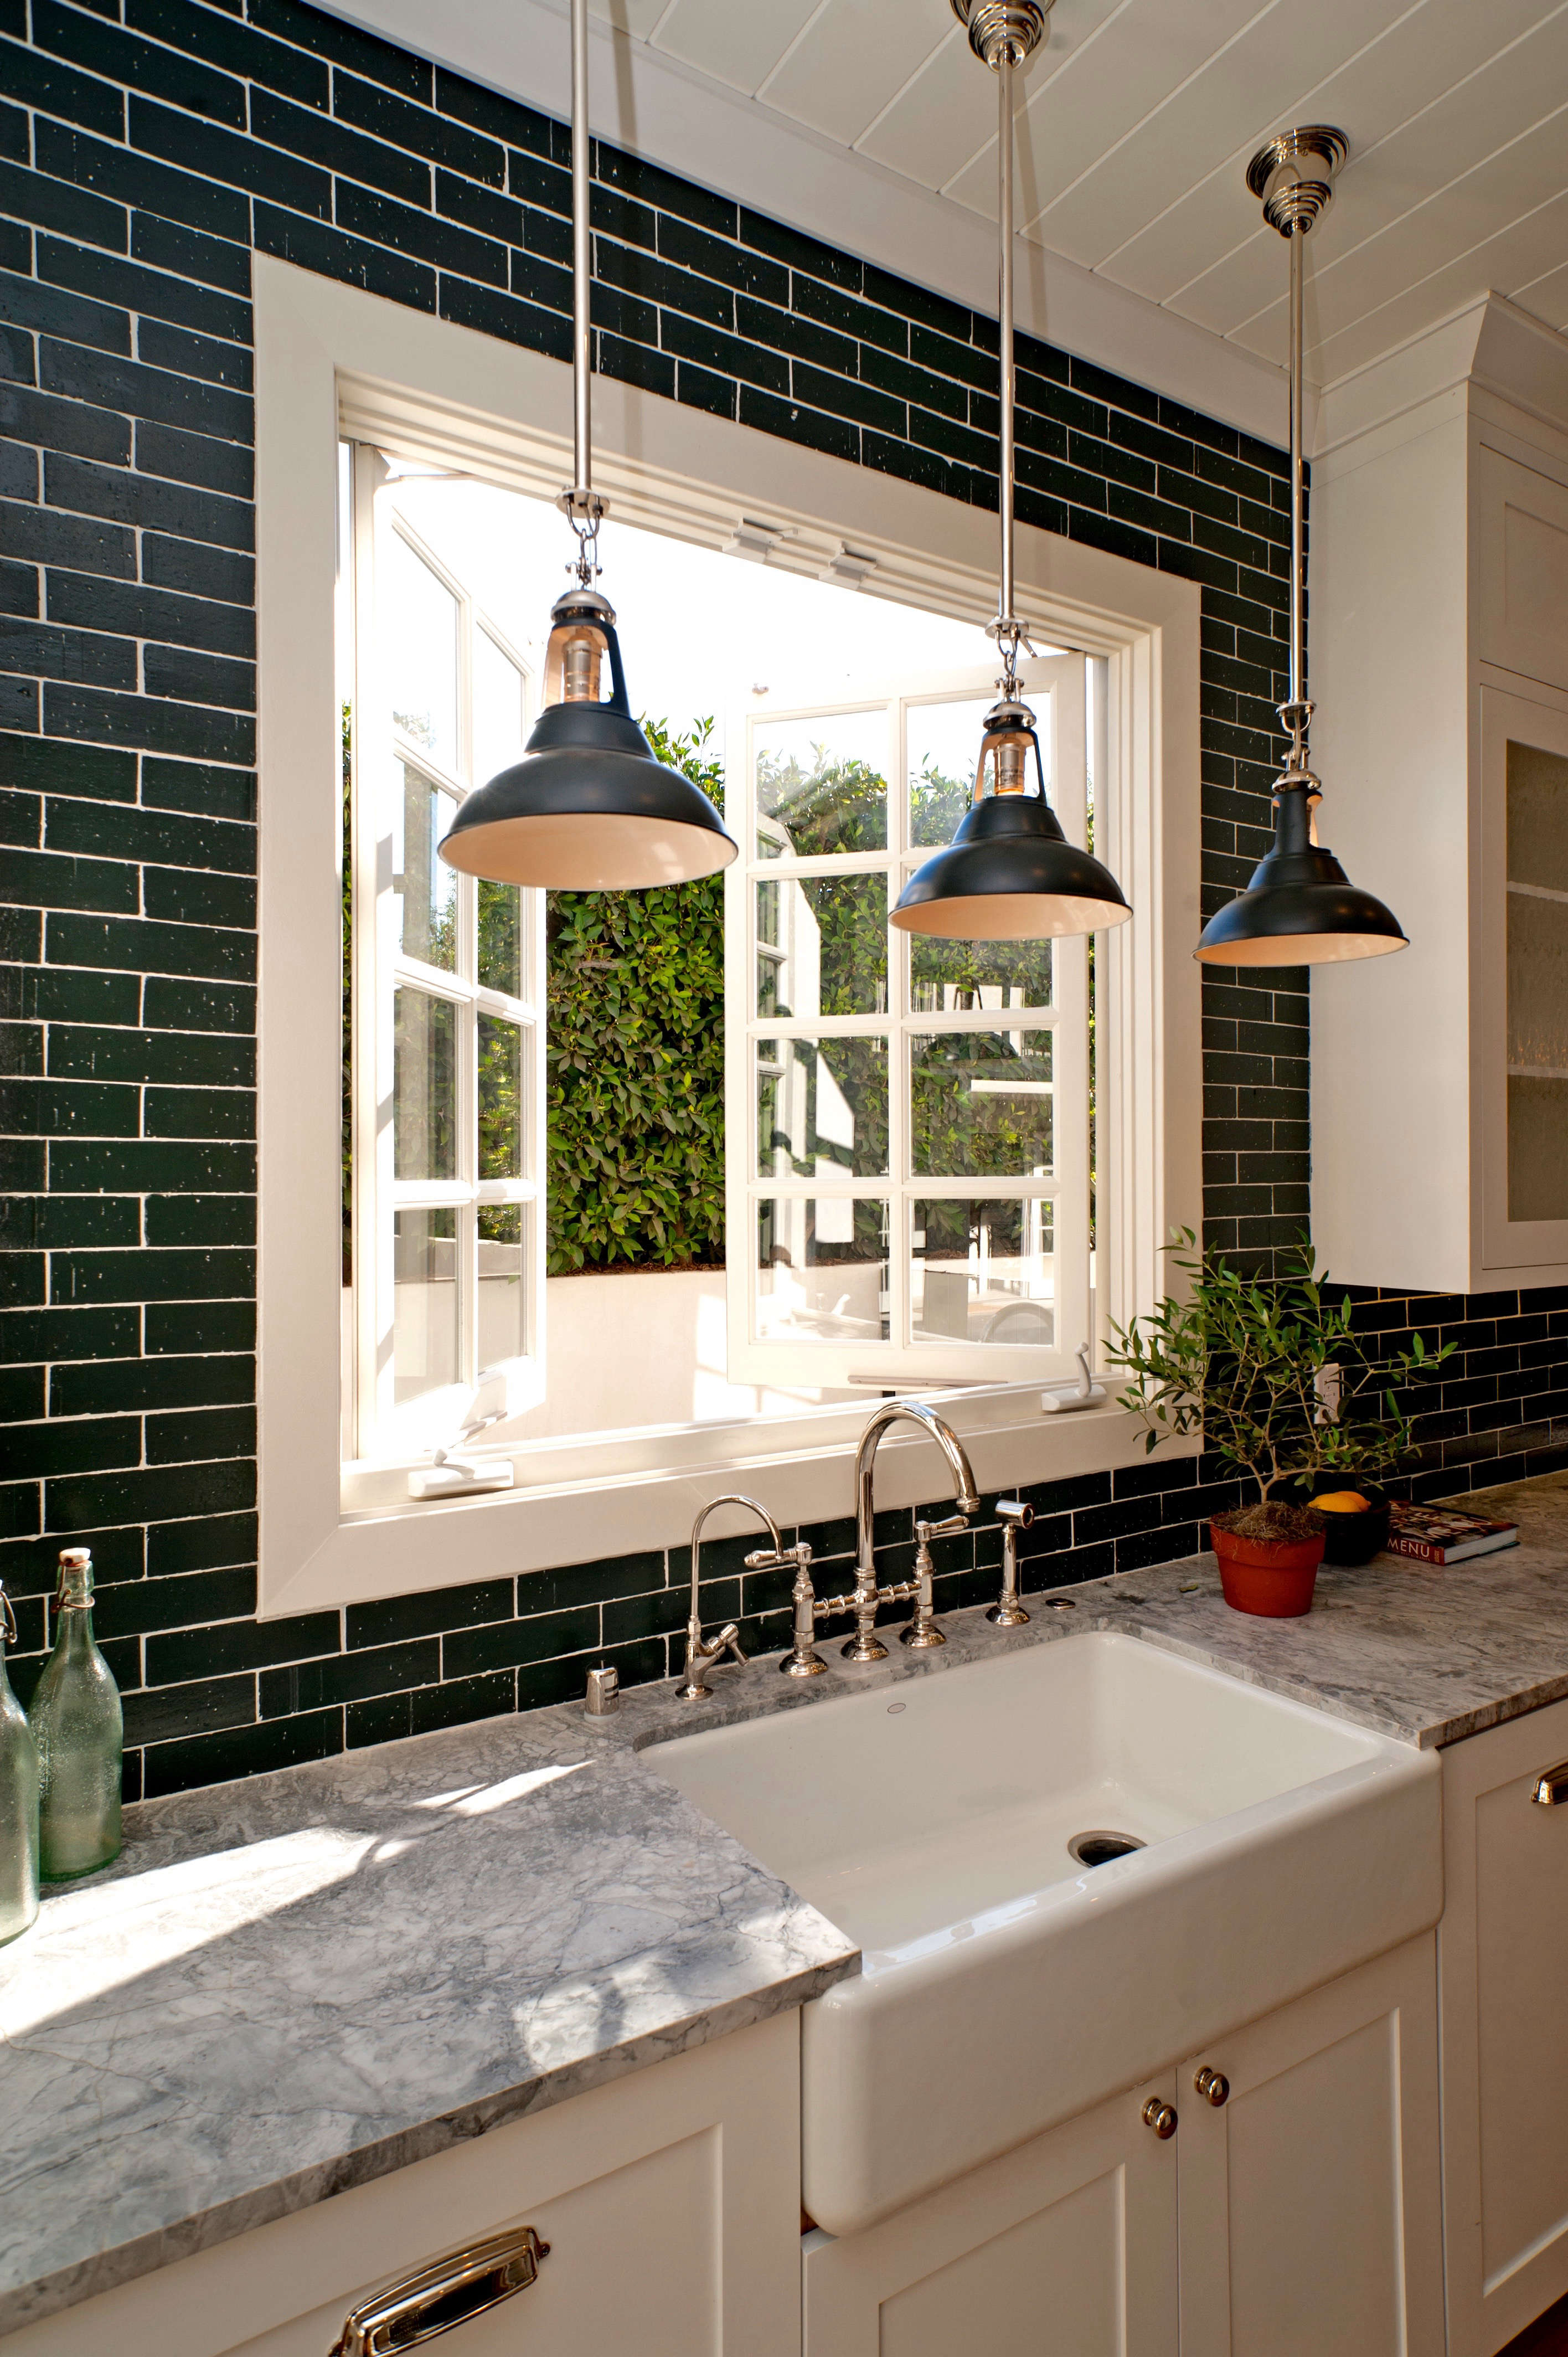 economical black painted brick veneer tiles in a kitchen by leigh herzig   remo 11